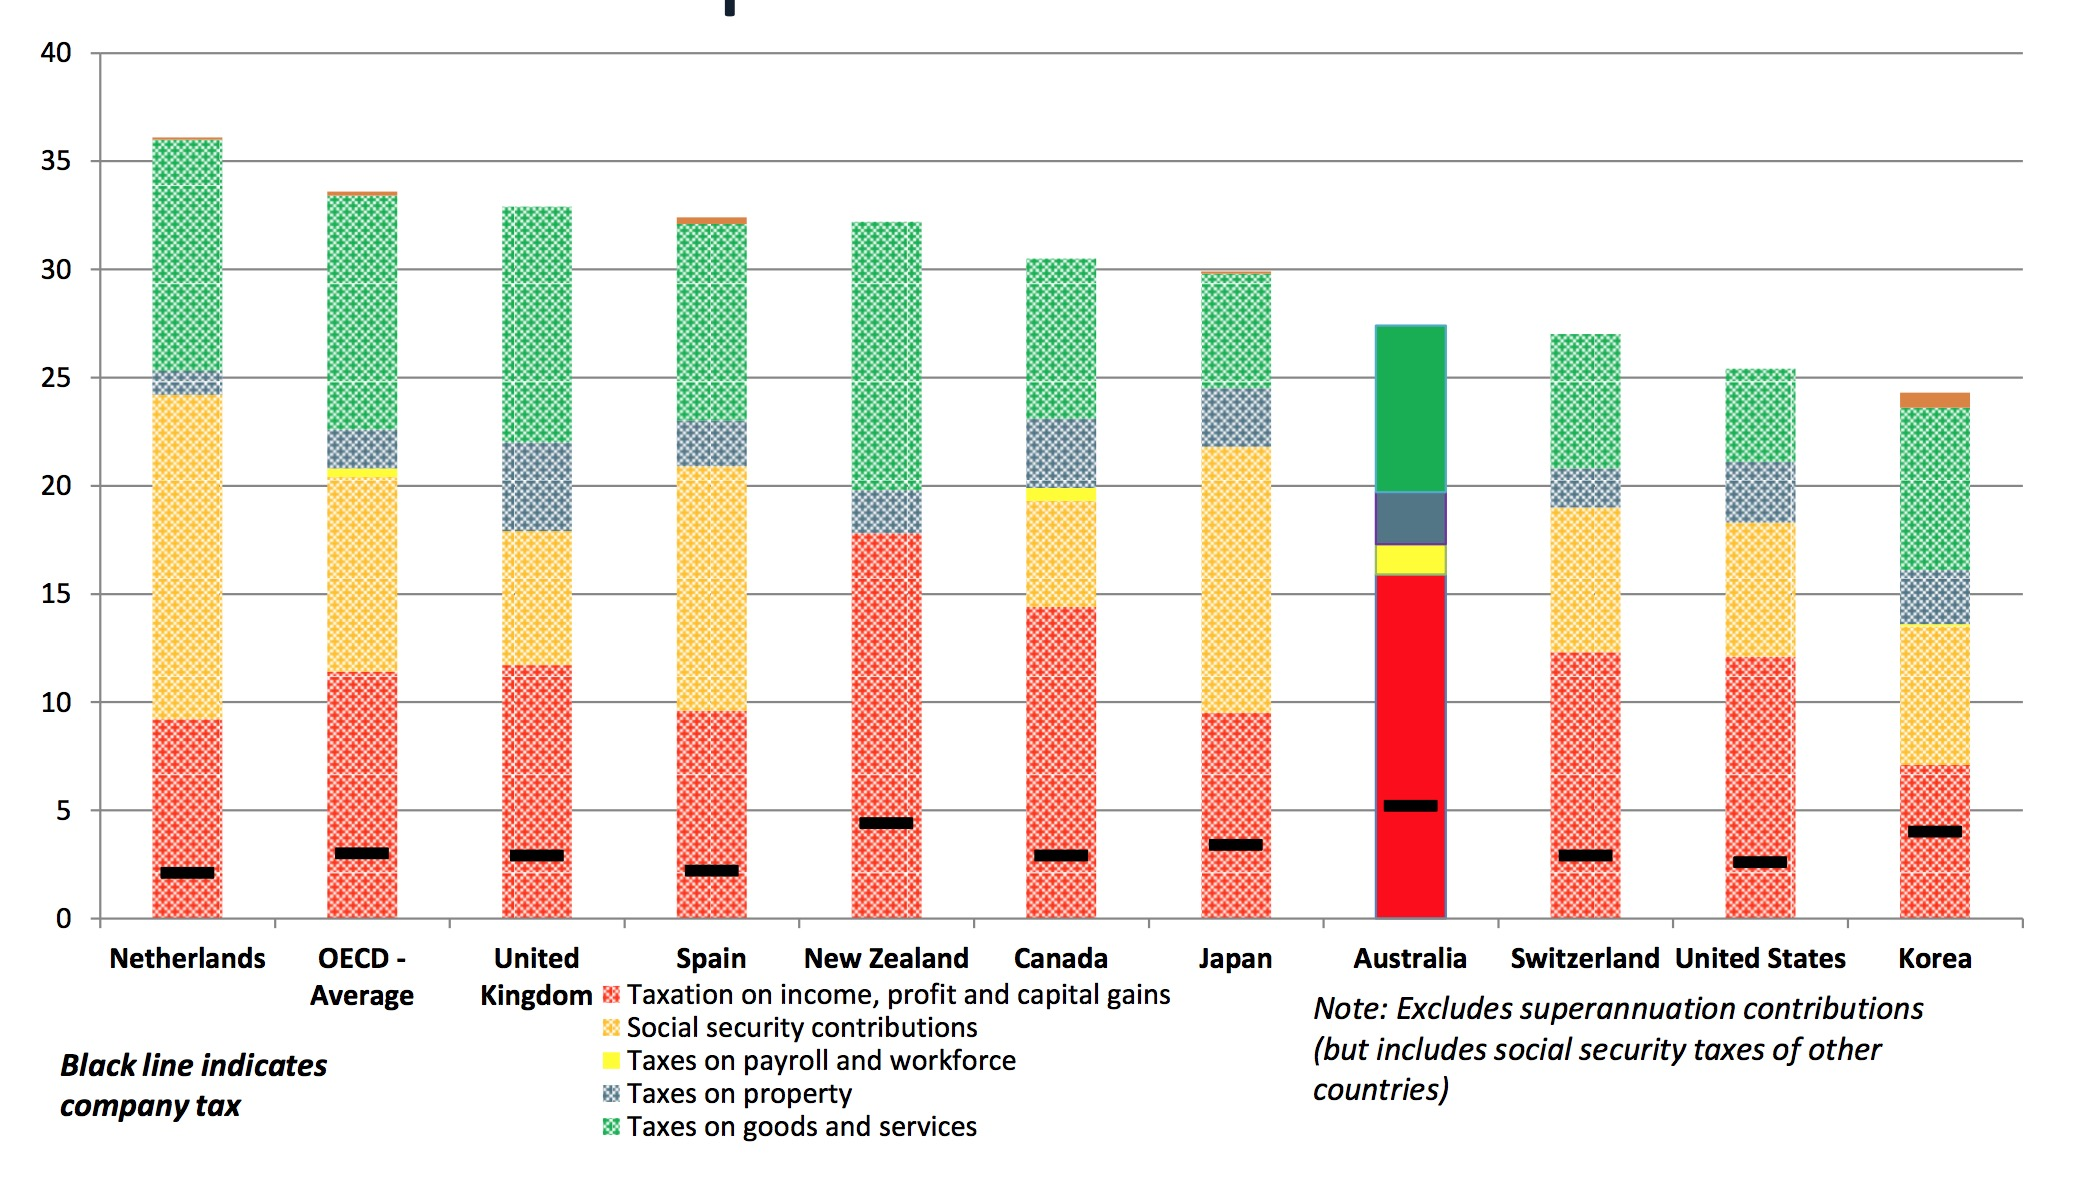 Australia's tax level and tax mix as % of GDP, comparative context Black indicates company tax